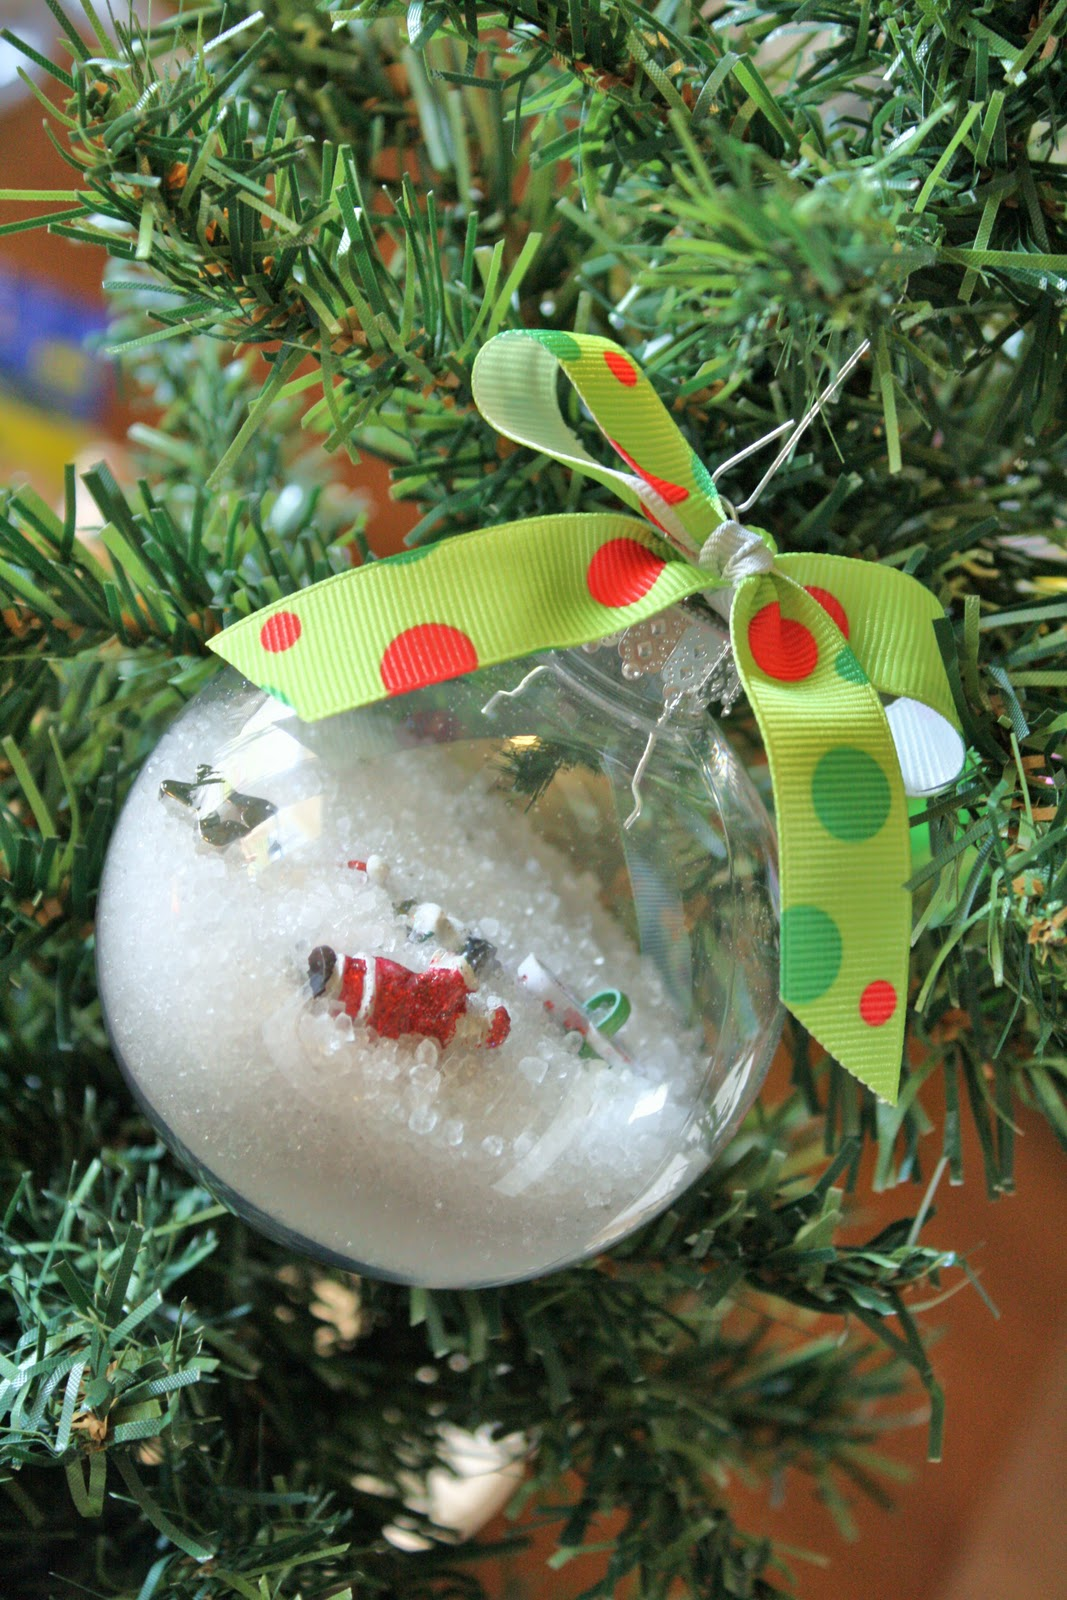 Eyeball christmas ornaments - If You Are Able To Buy The Supplies On Sale Or Use Coupons You Can Make One Of These For Just A Few Bucks These I Spy Ornaments Would Make Great Gifts